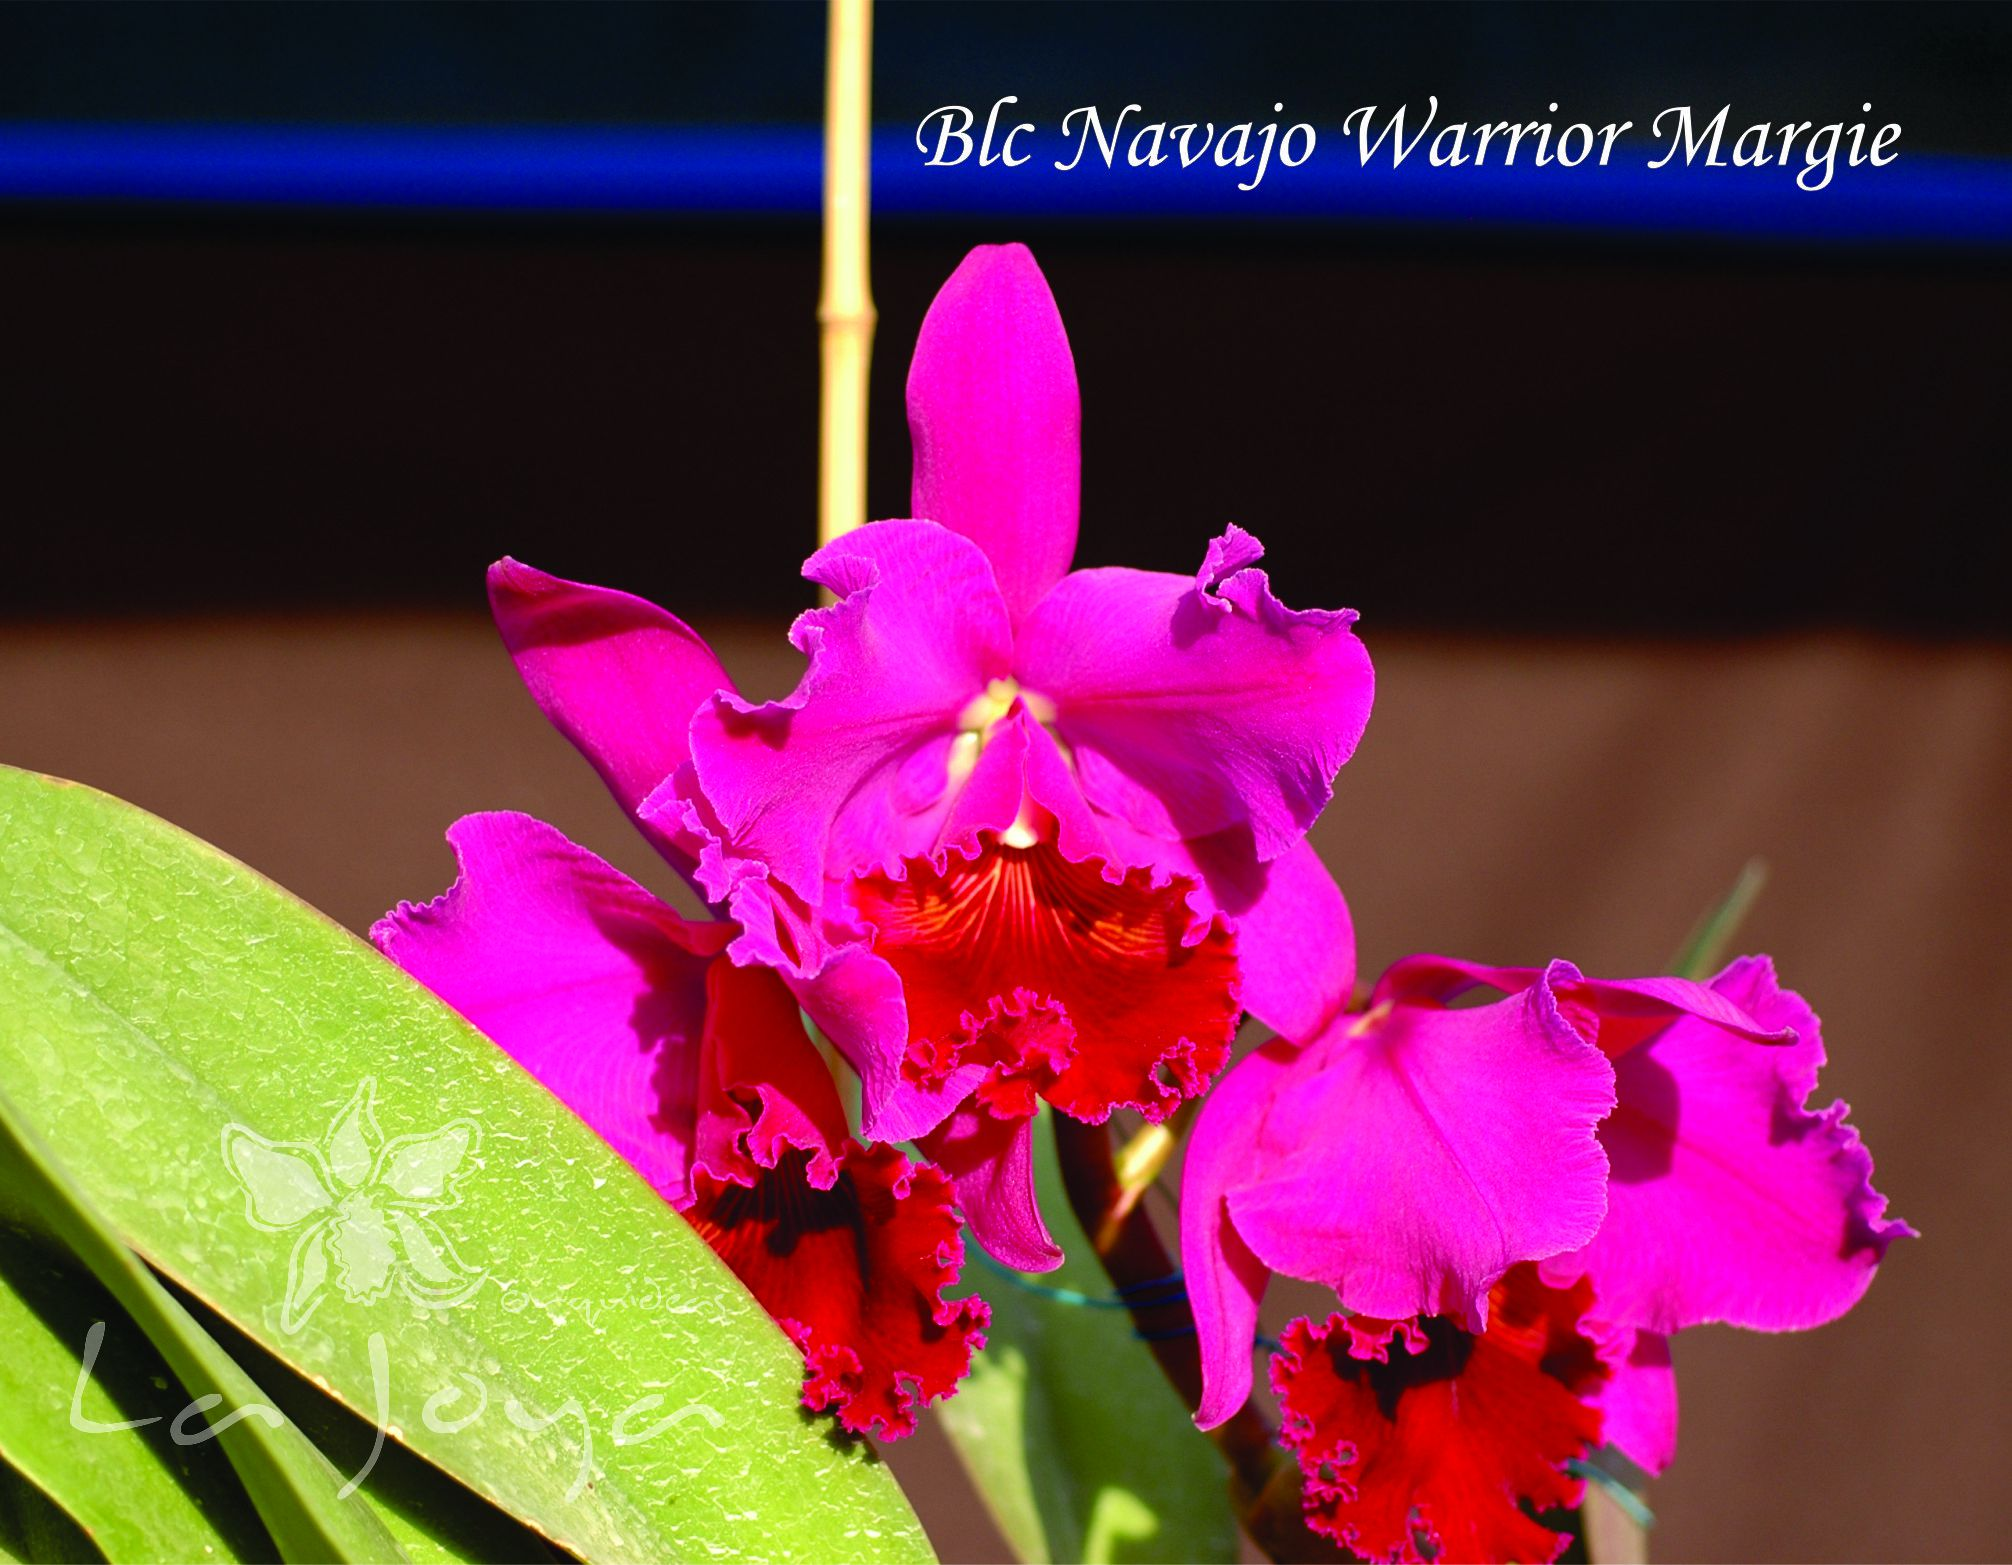 Blc. Navajo Warrior Margie